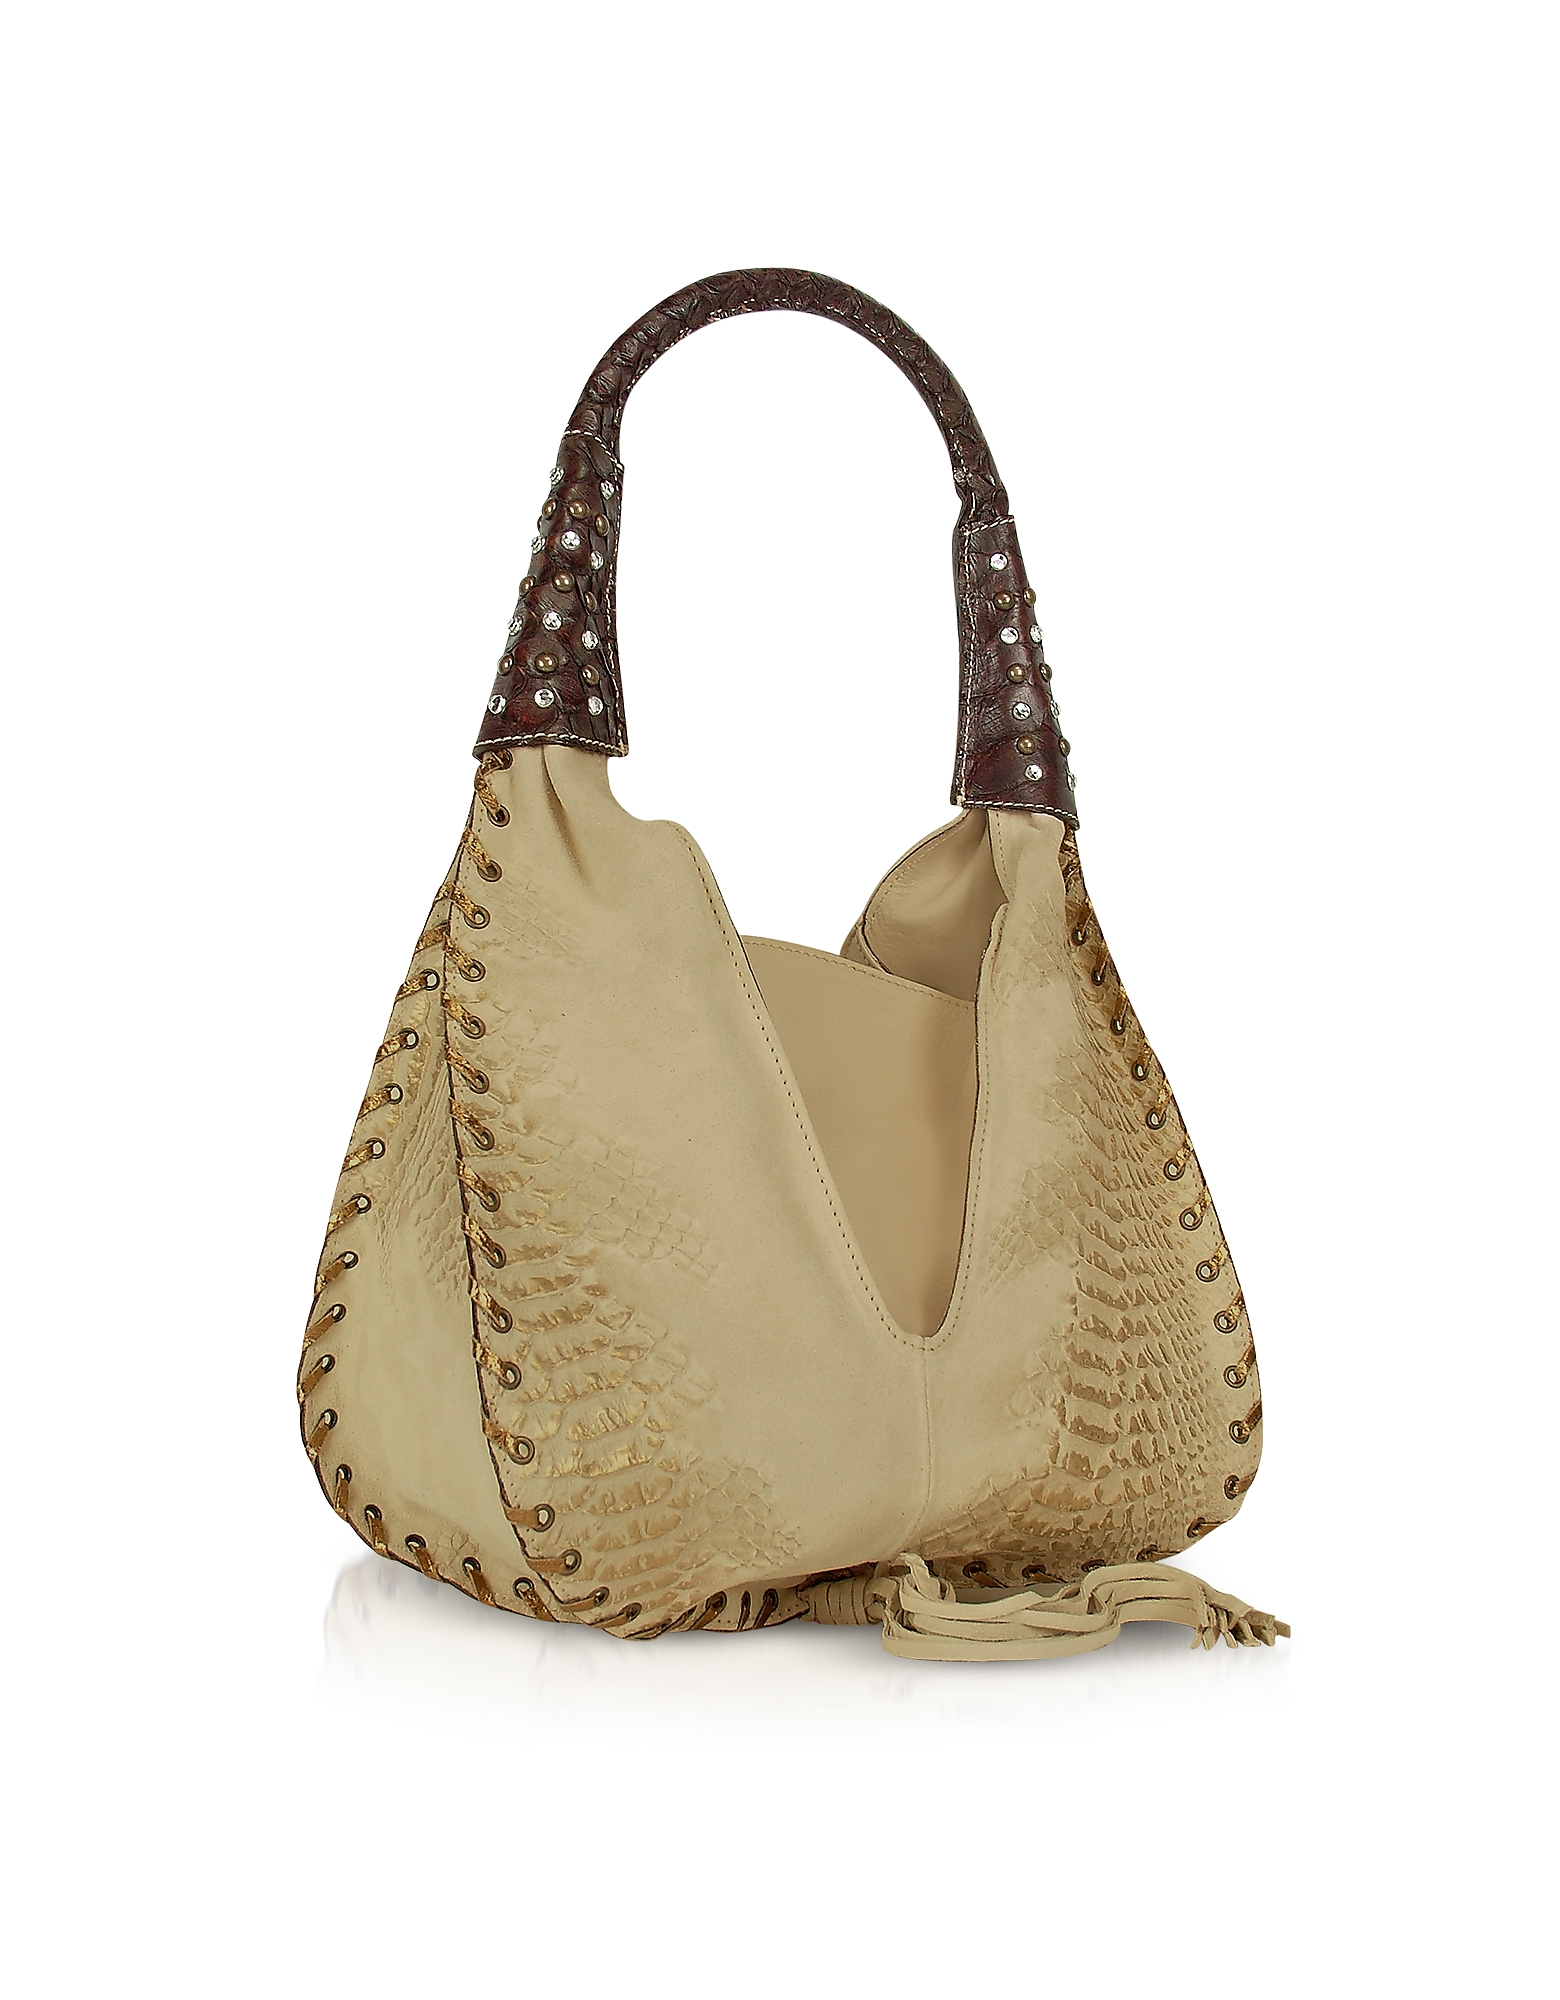 Ghibli Designer Handbags,  Jeweled Beige Suede and Reptile Leather Hobo Bag